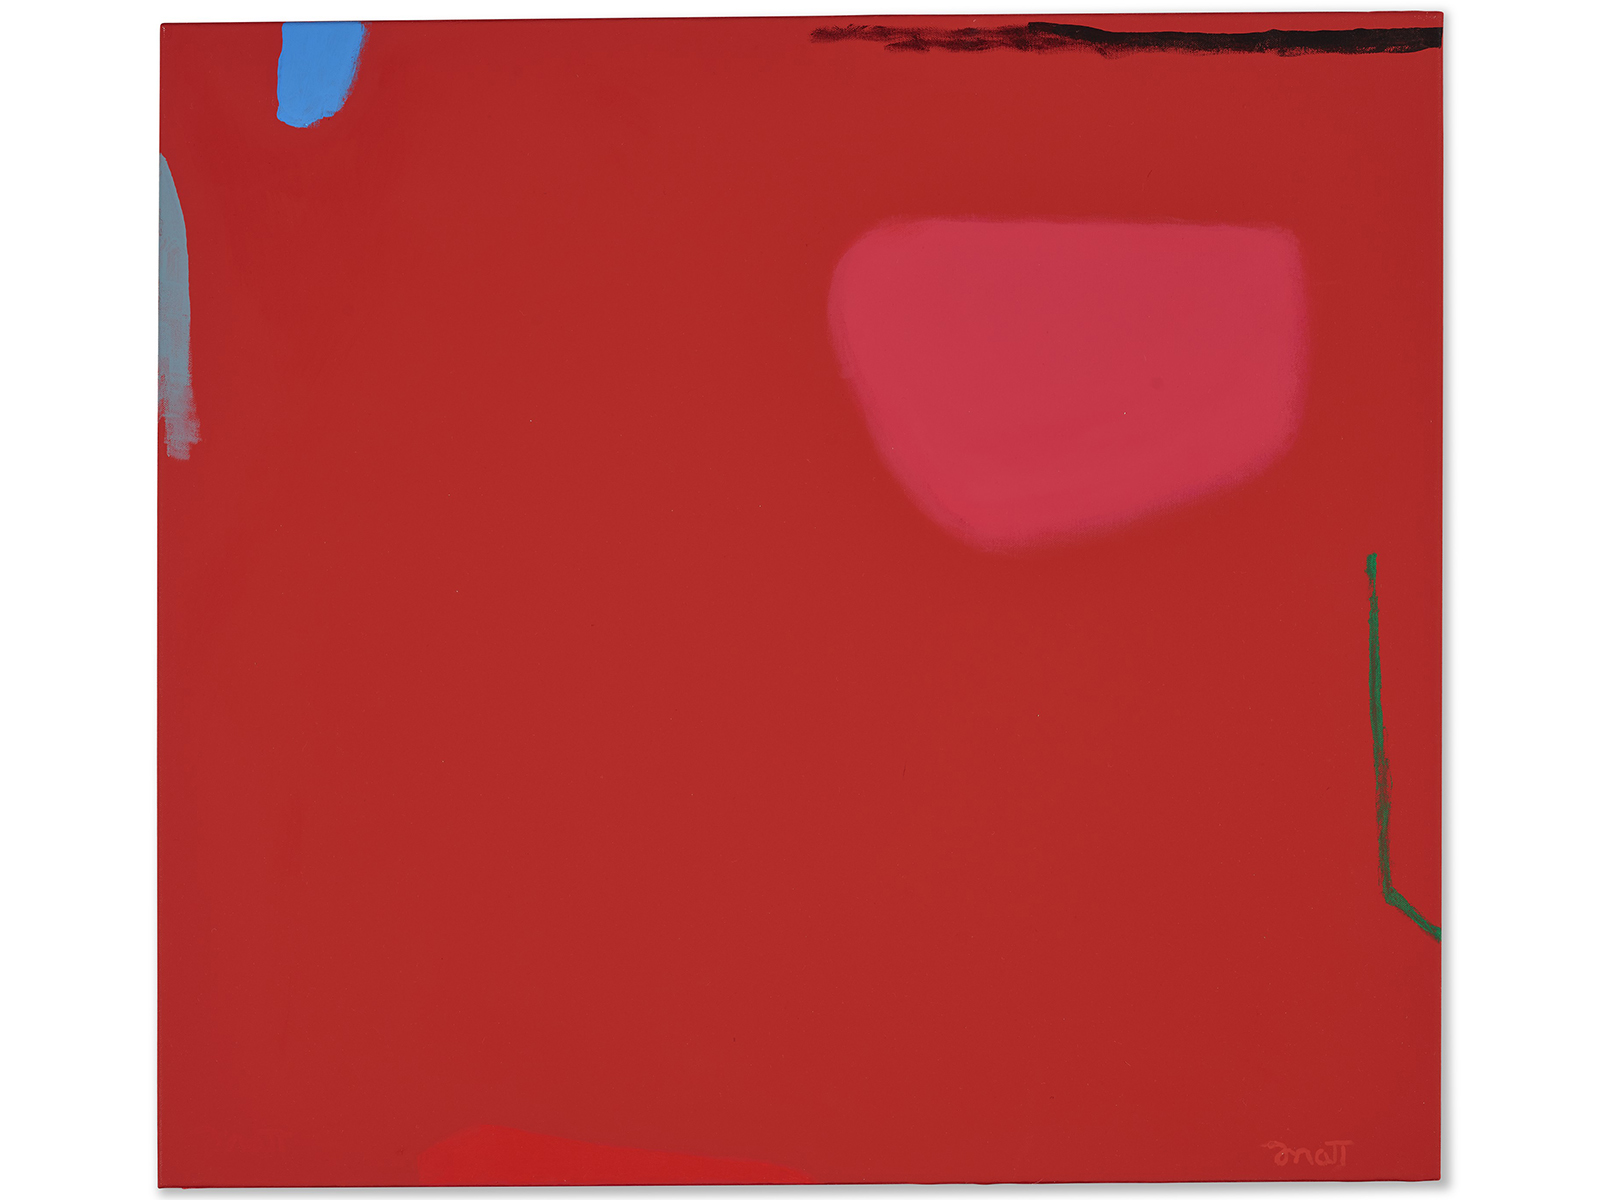 A red Color Field painting with a small green line by Dorothy Fratt